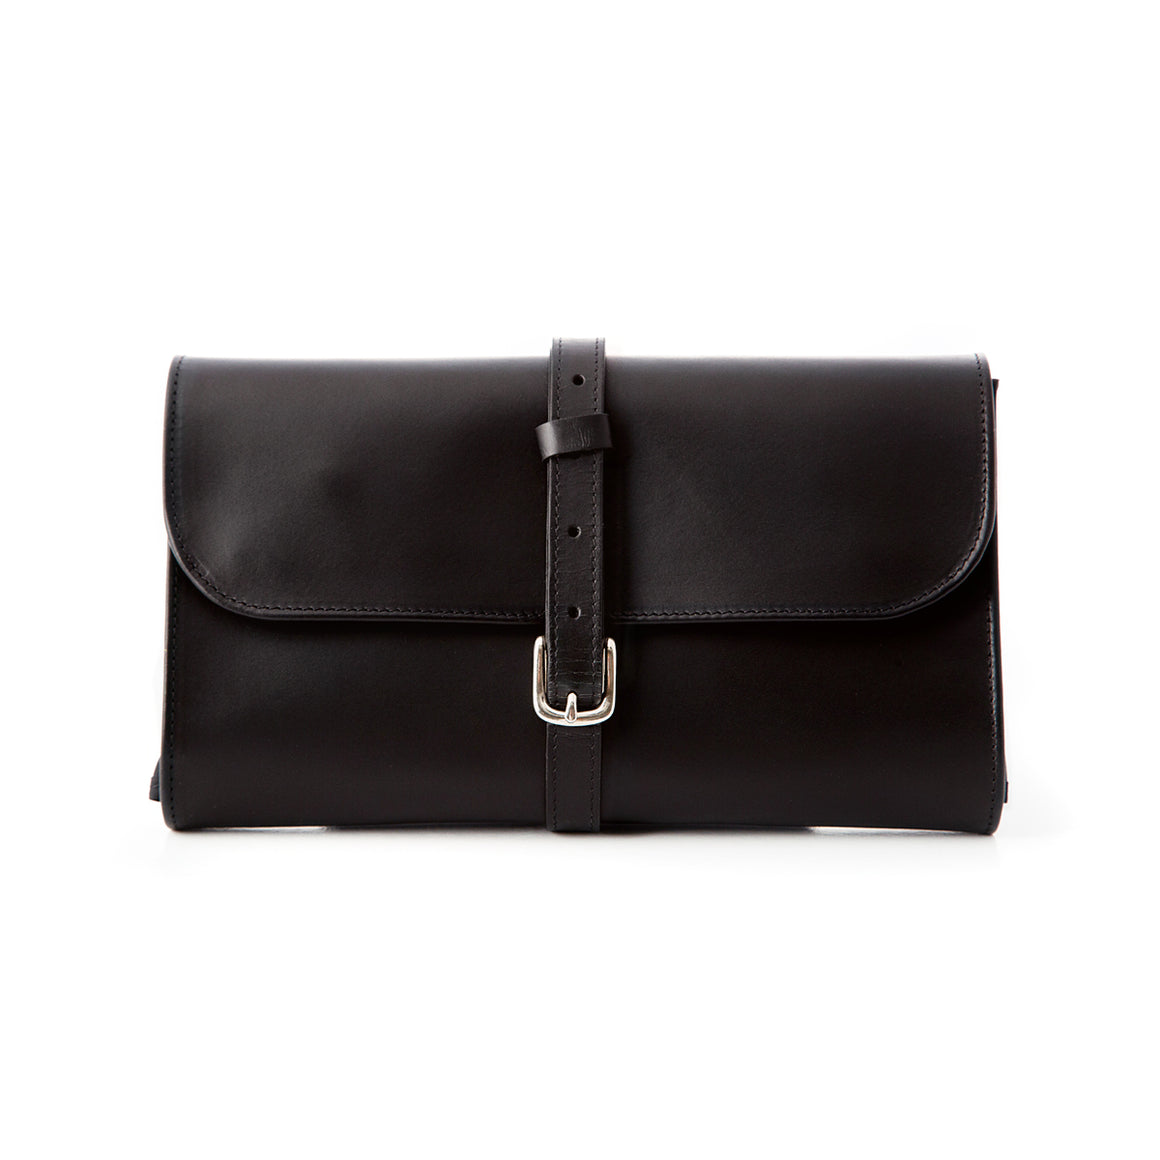 Black Leather Hanging Wash Bag